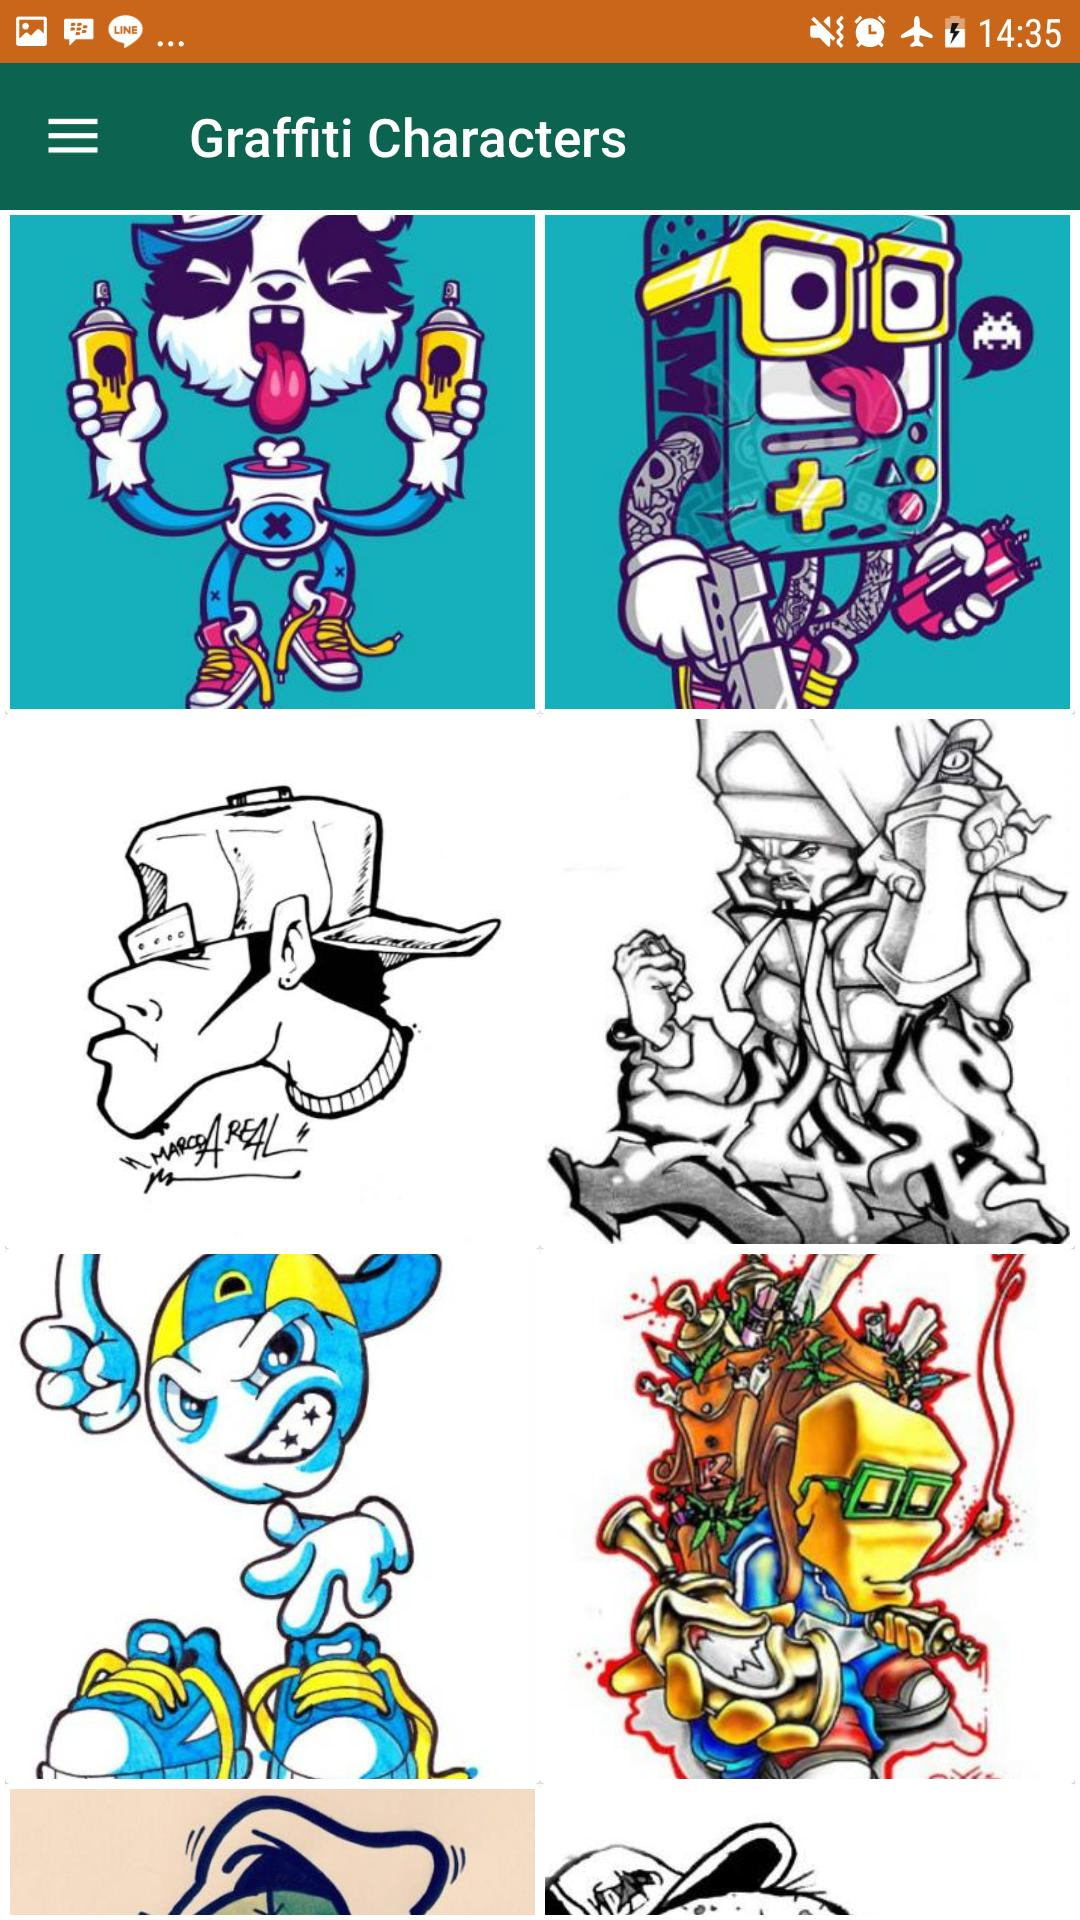 Easy graffiti characters poster easy graffiti characters screenshot 1